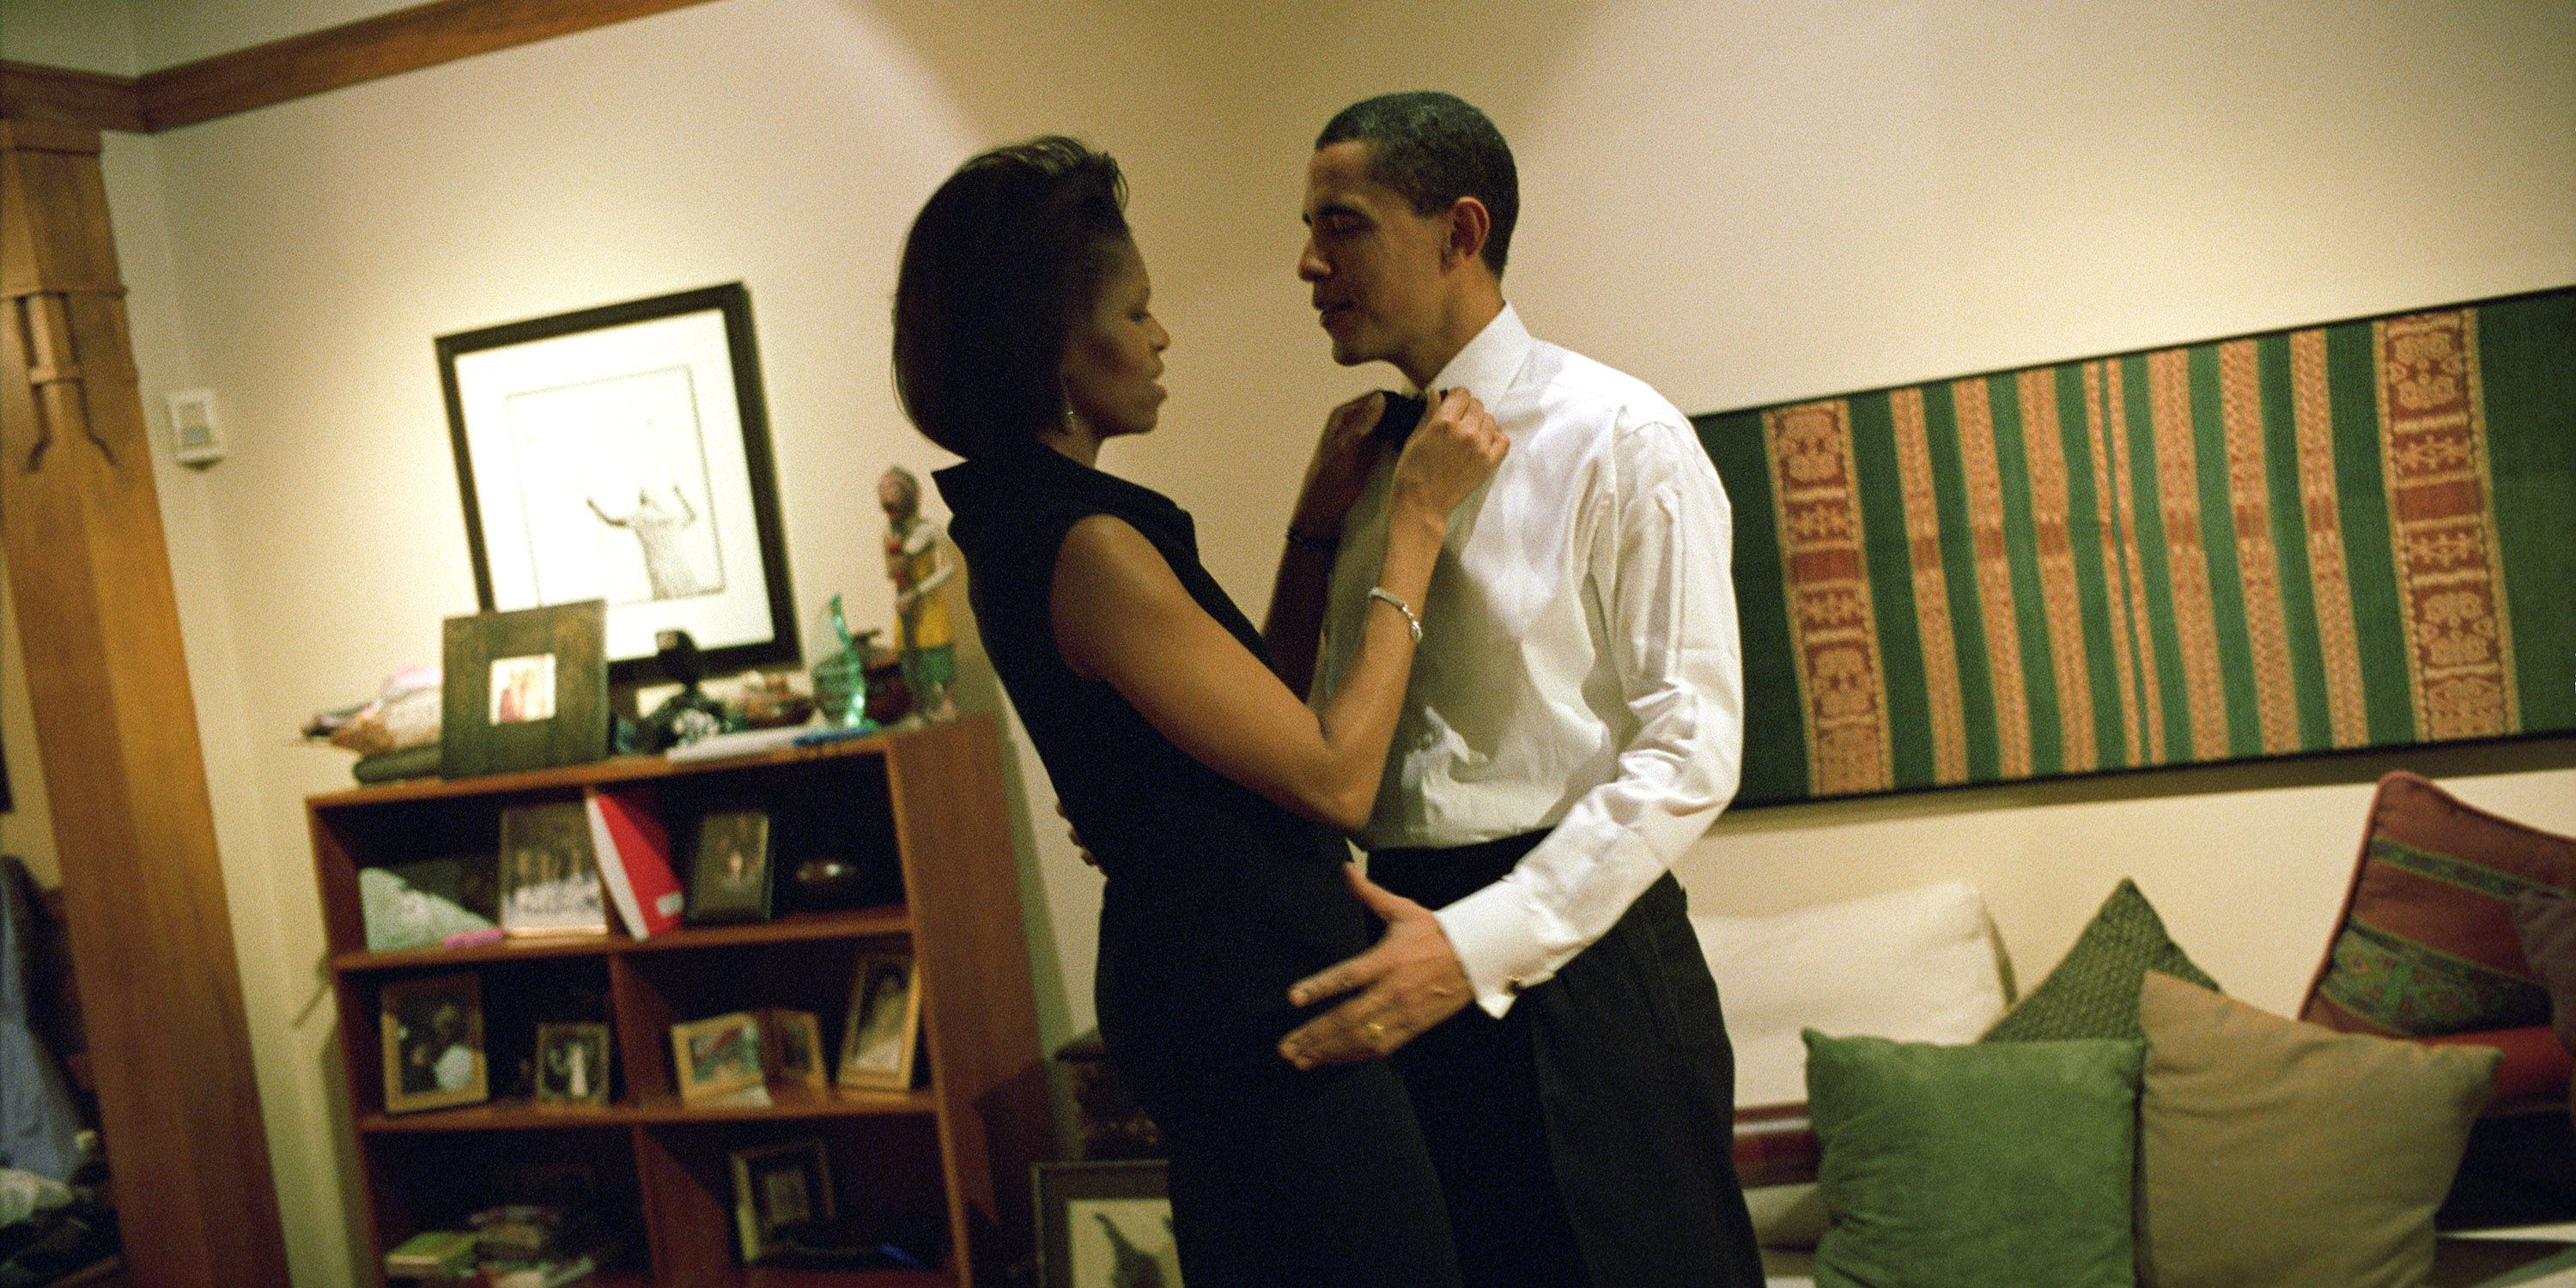 <p>Getting ready at their home in Chicago before Senator Obama addresses the Chicago Economic Club, 2004. </p>